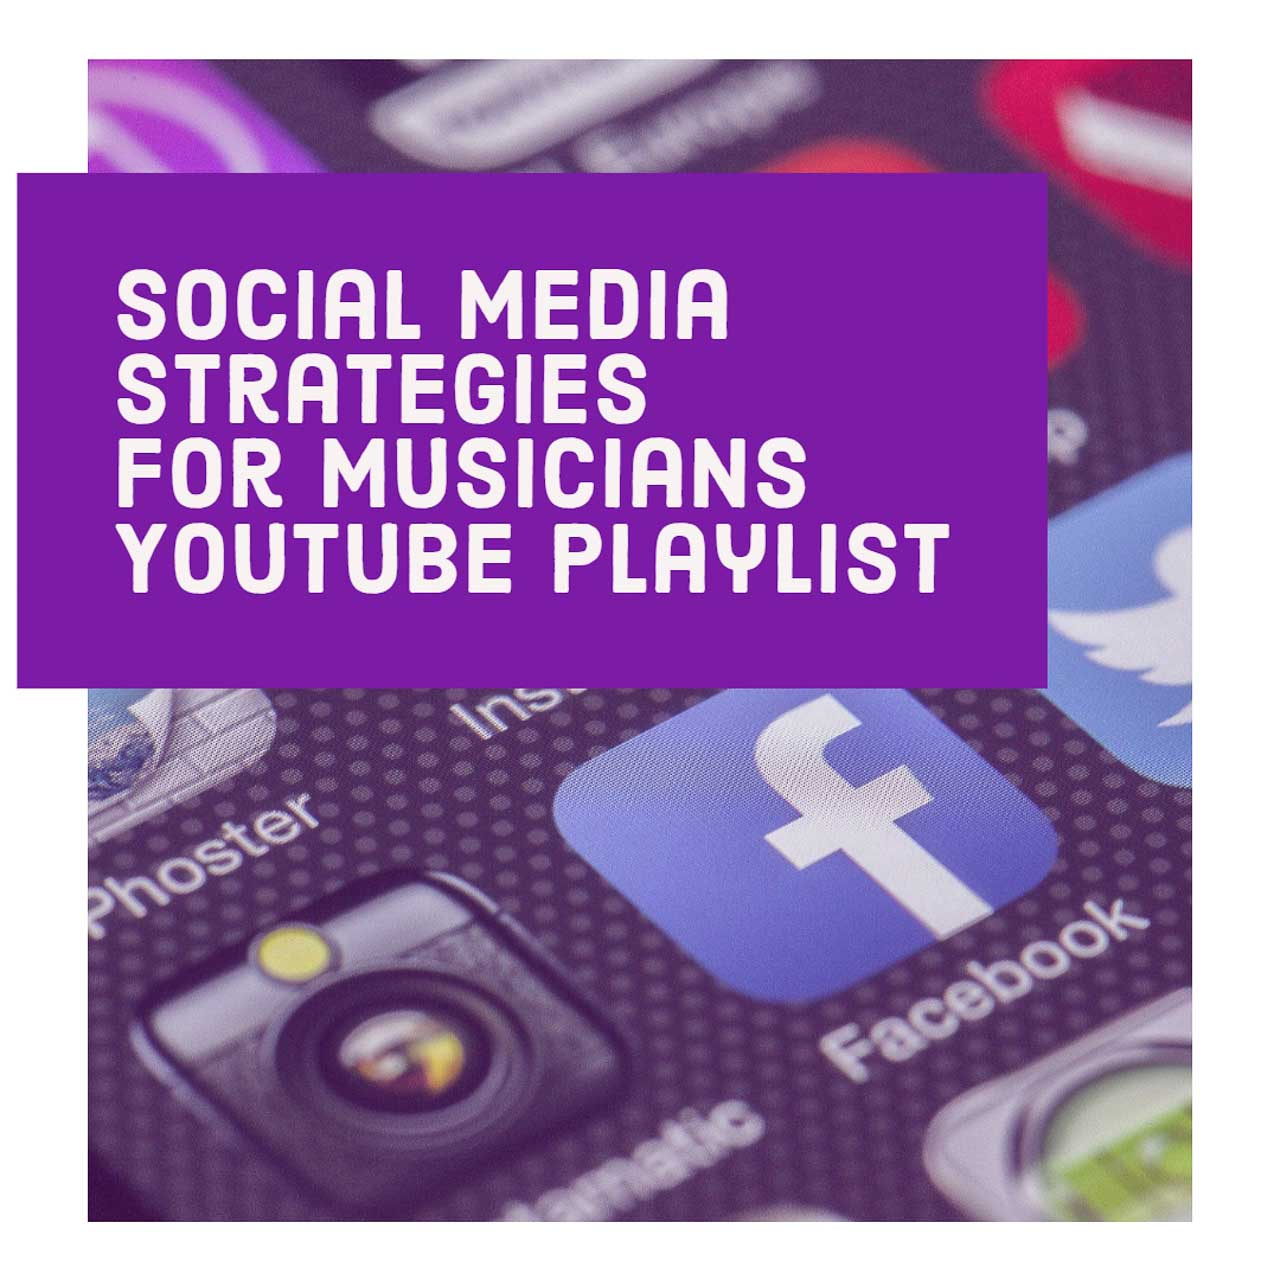 Social Media Strategies for Musicians - YouTube Playlist